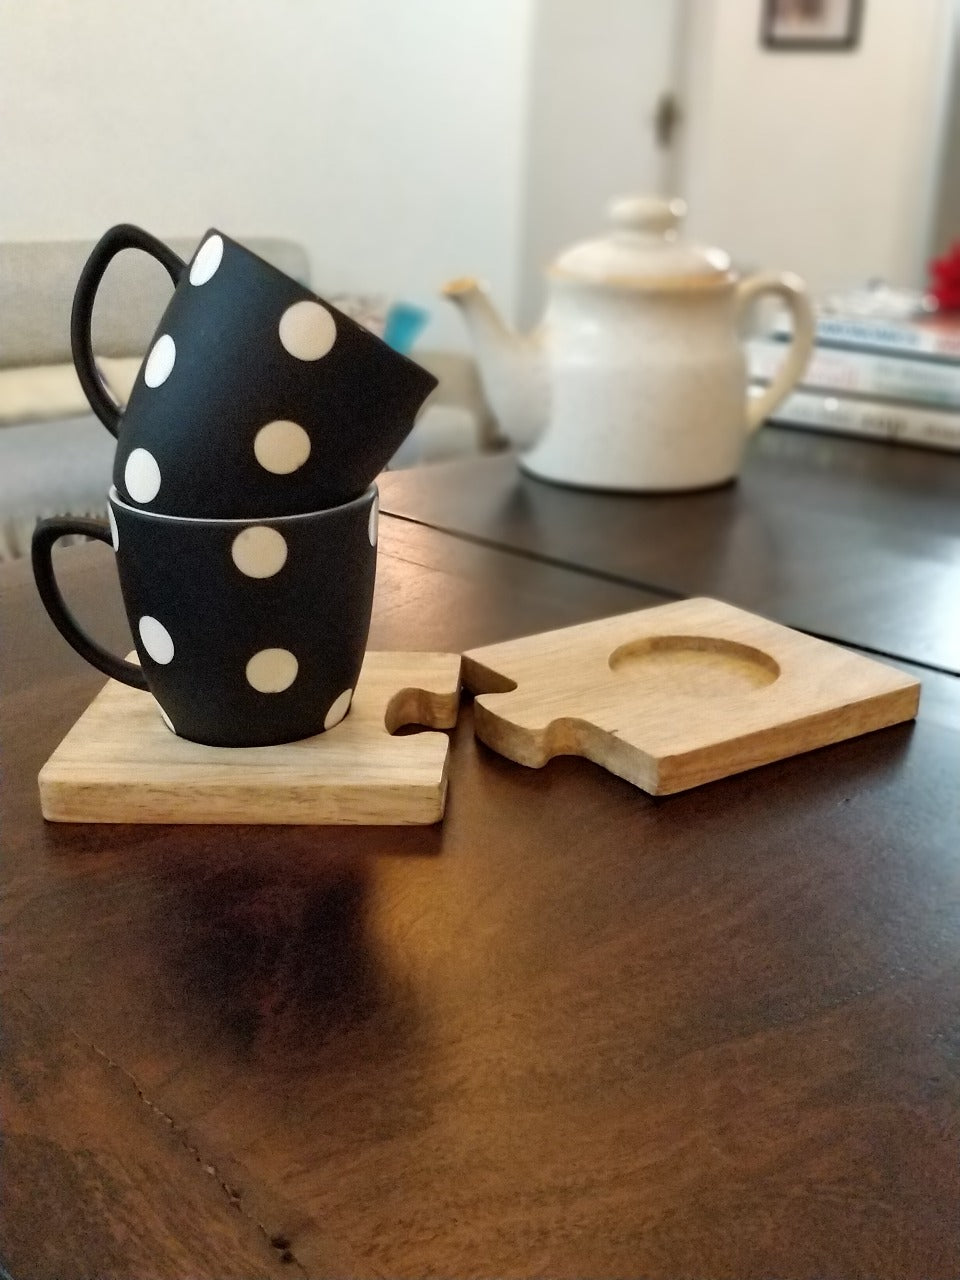 Unbreakable black and white tea cups with polka dot design (Set of 2) along with wooden coasters